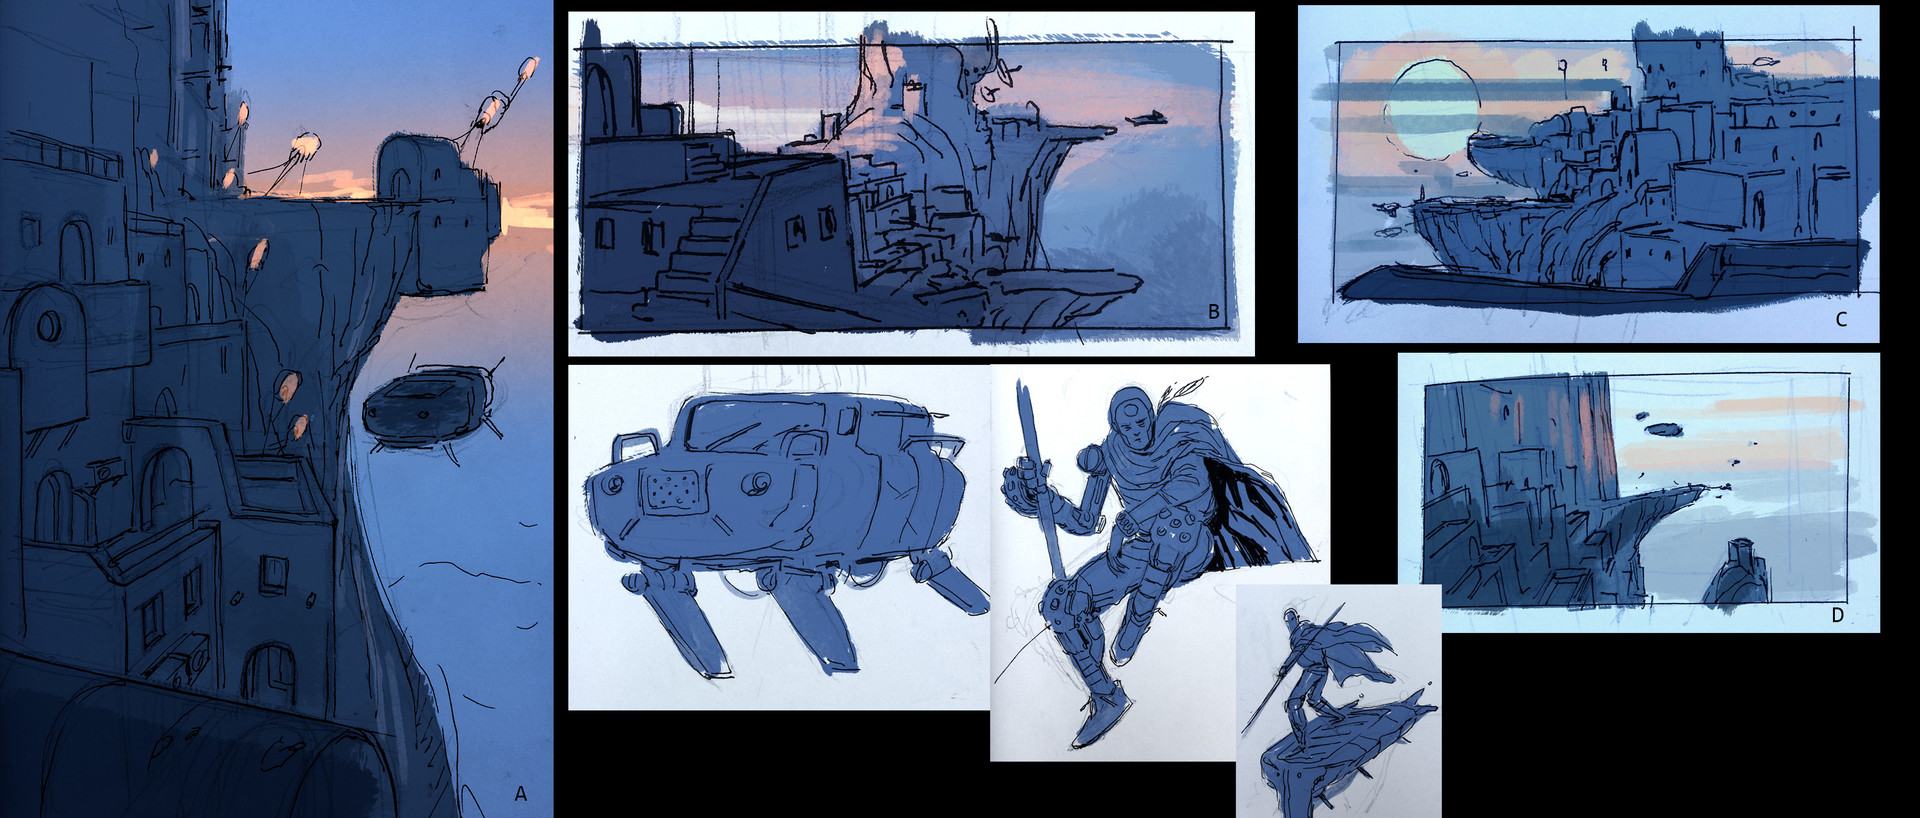 Romain jouandeau roughs board